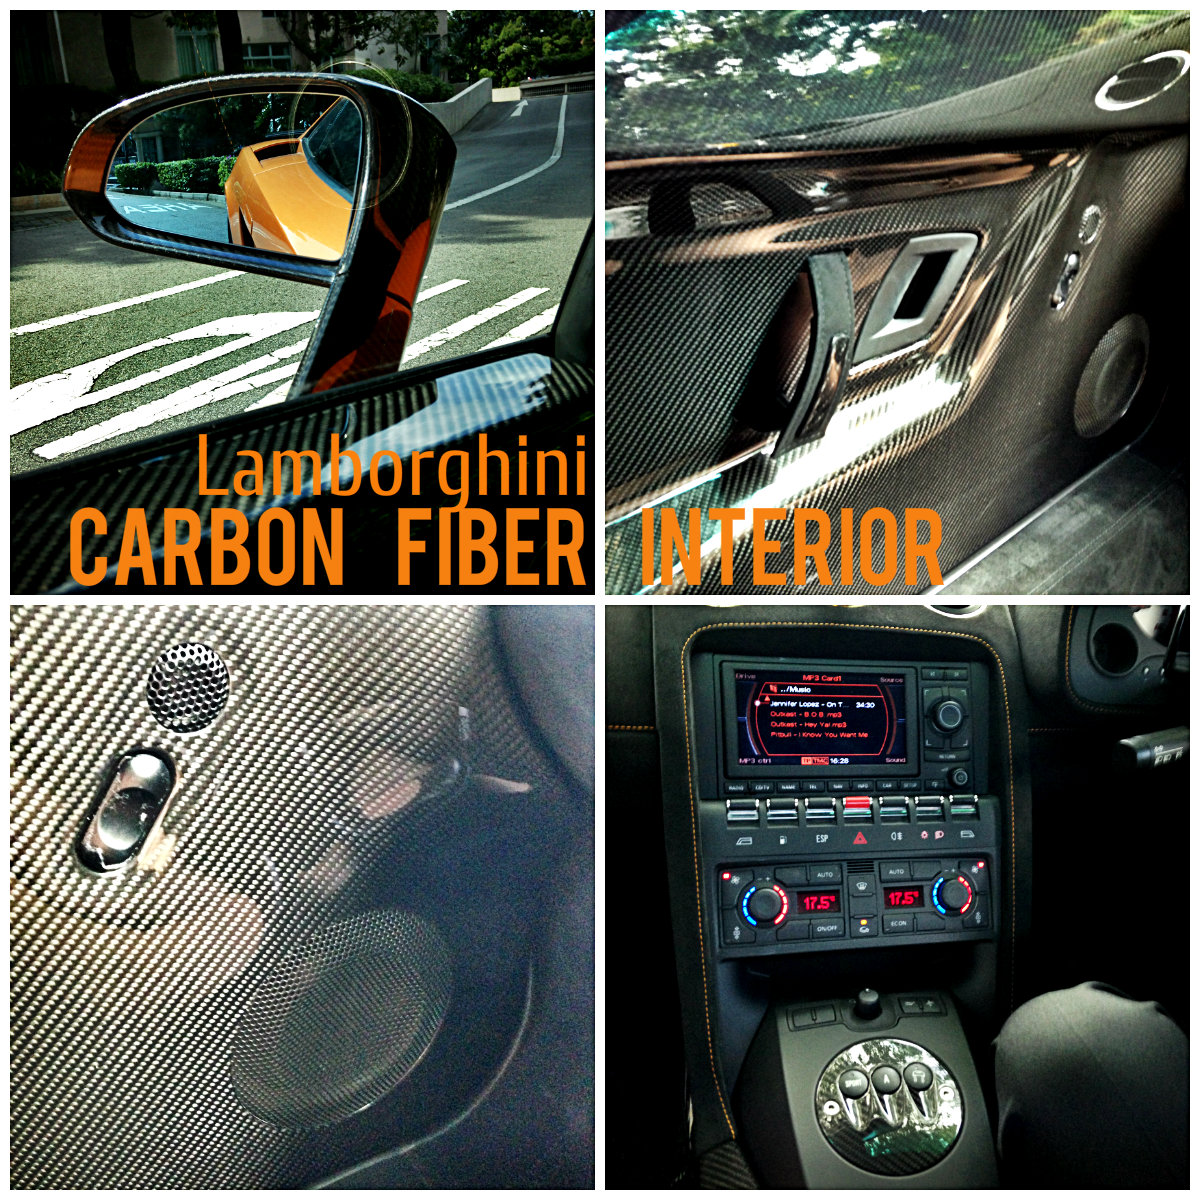 2013 Lamborghini Gallardo Interior: Most Lightweight Lamborghini Super Car